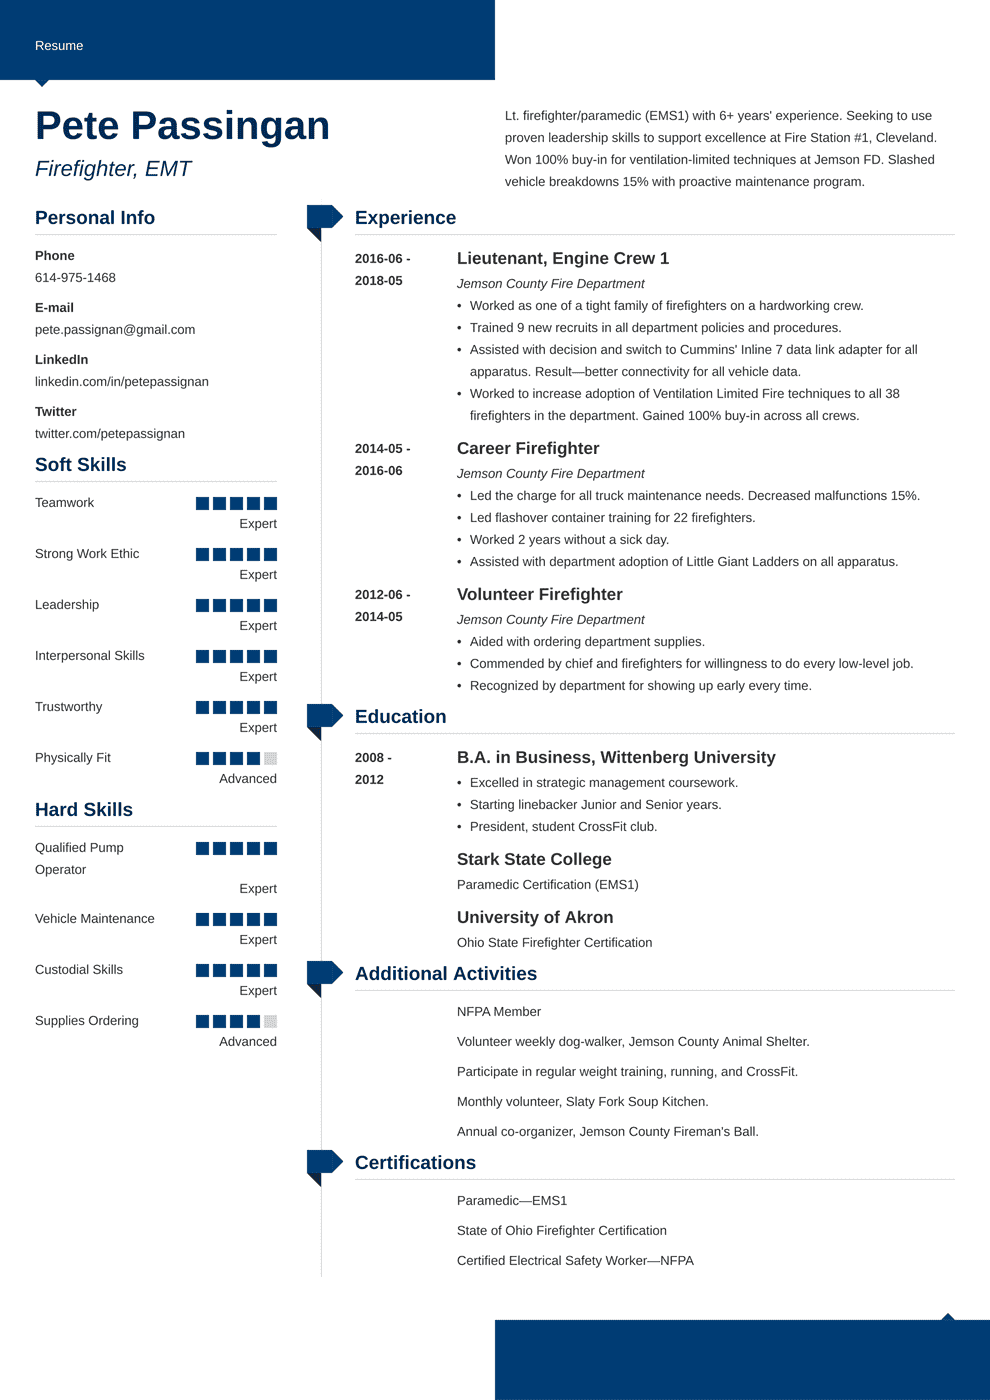 Firefighter Resume Examples (Template, Guide 20+ Tips)